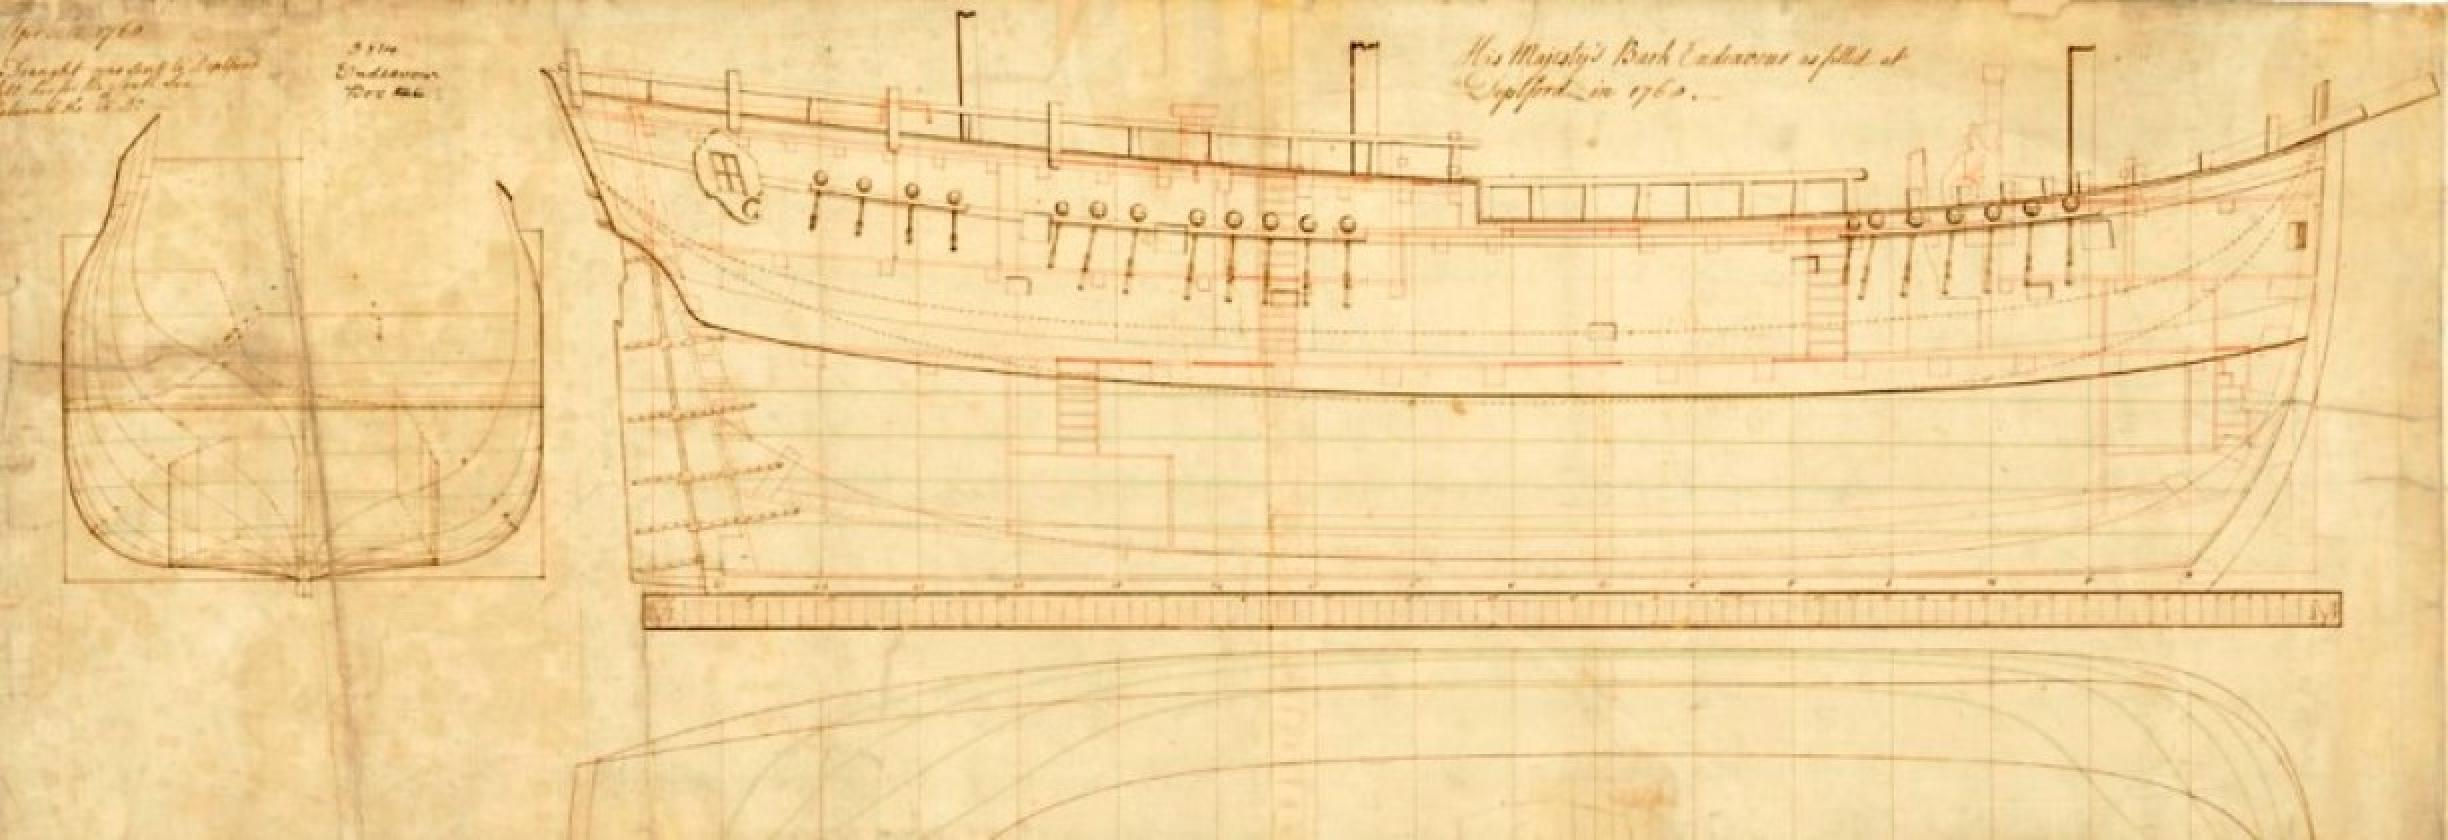 Admiralty plan of HMS Endeavour